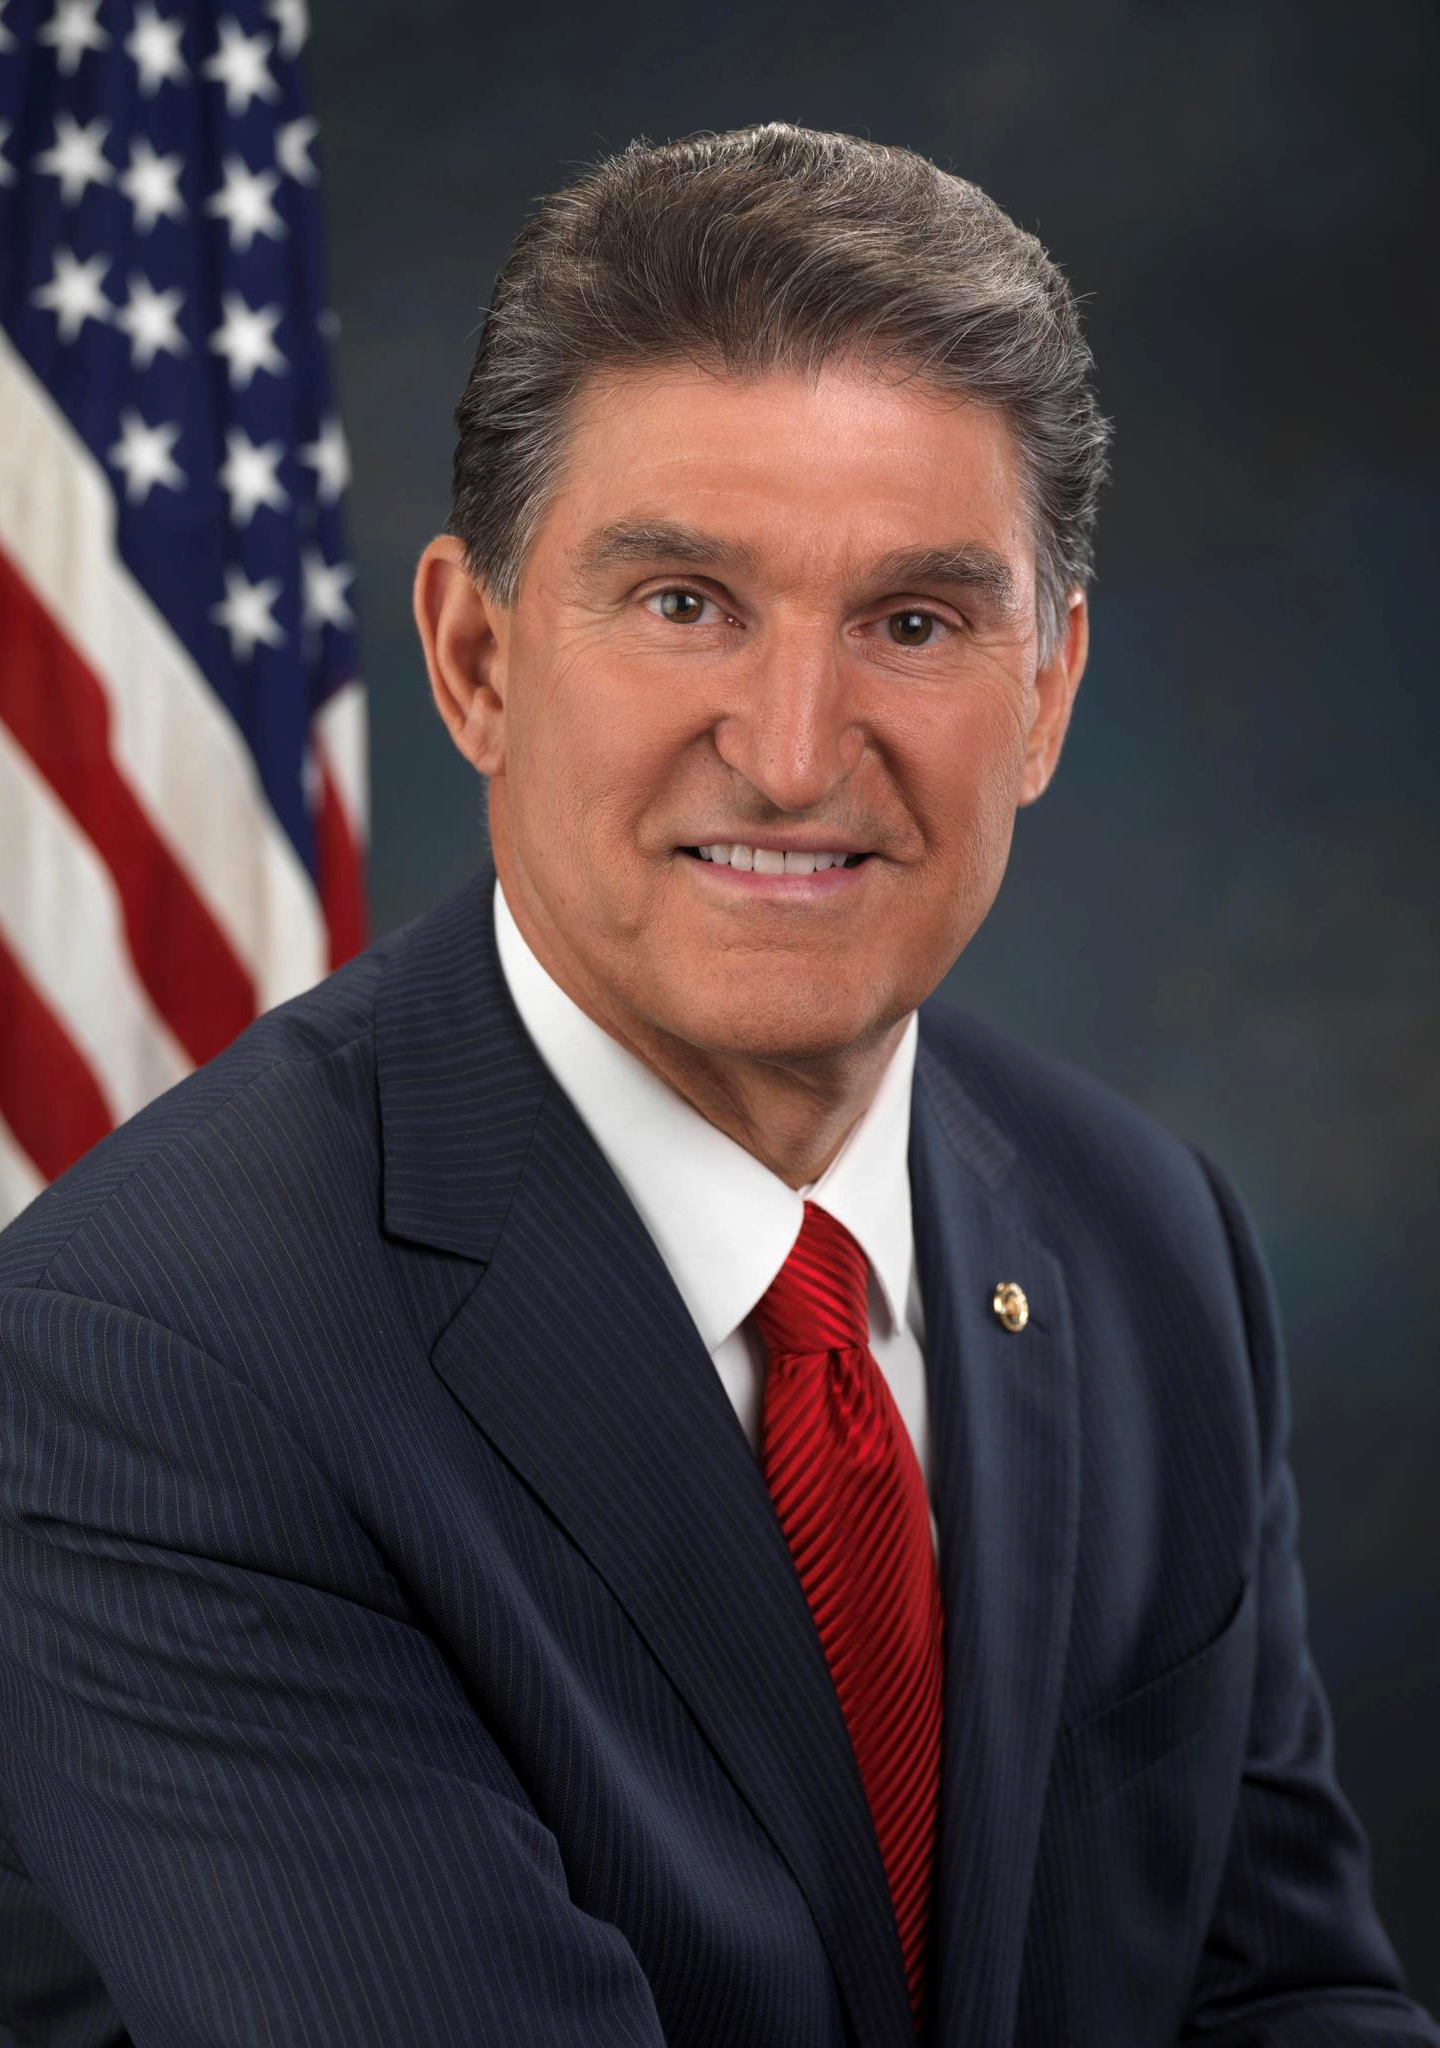 Joe Manchin Portrait_1513784213185.jpg.jpg